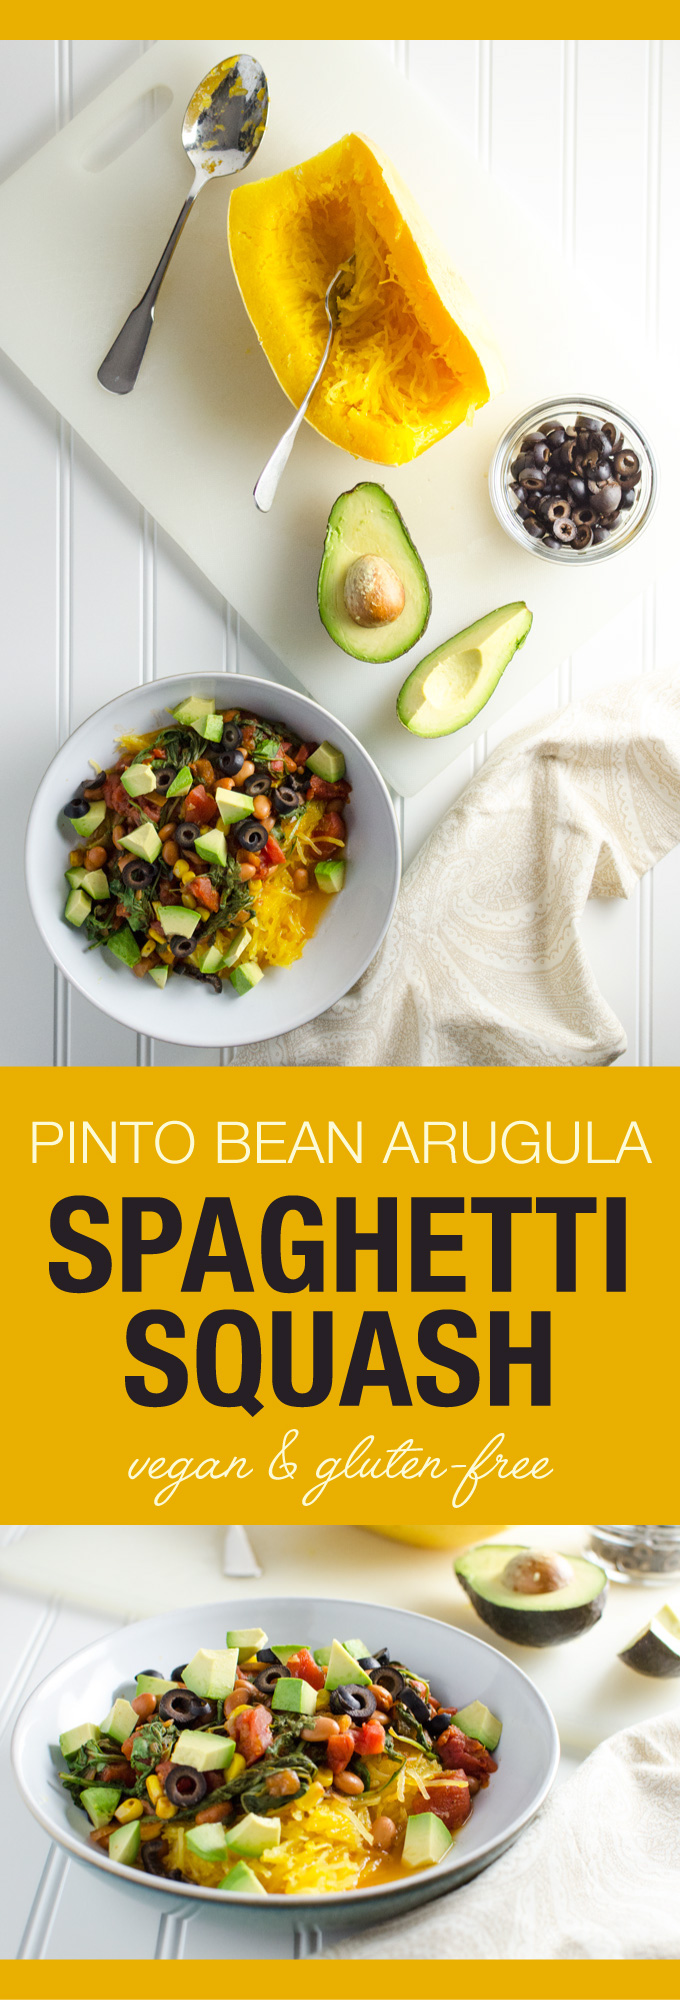 Easy Spaghetti Squash with Pinto Beans and Arugula - this simple recipe offers a lovely blend of Mexican cuisine inspired flavors - squash is cooked in a slow cooker for added convenience   VeggiePrimer.com